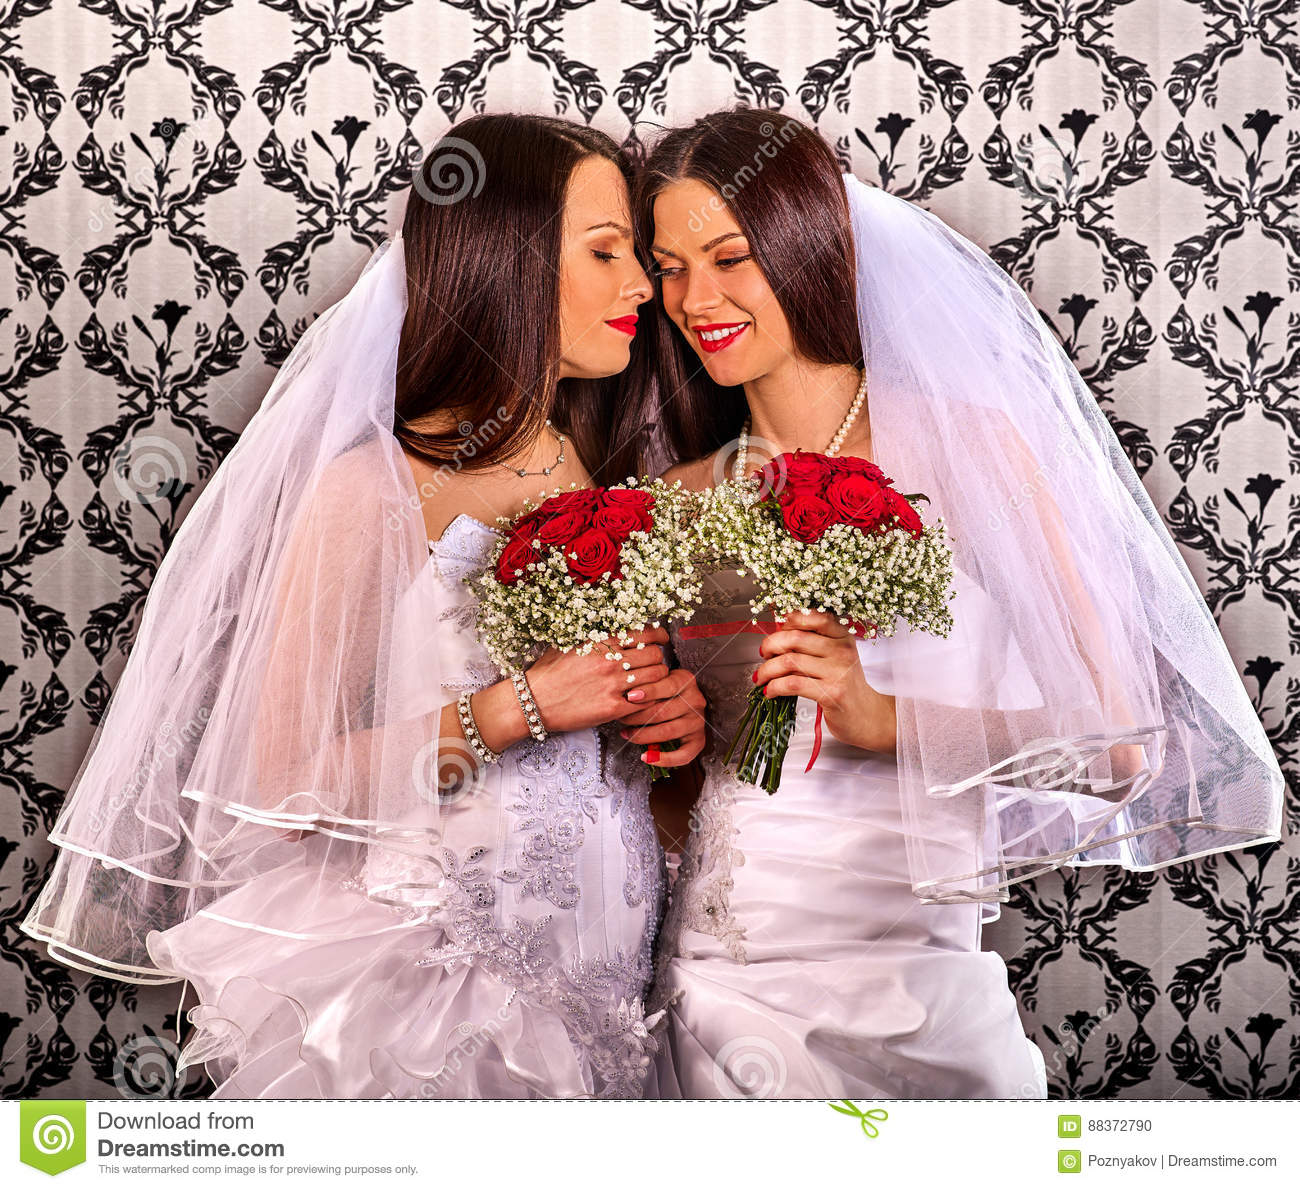 Kissing Wallpaper: Lesbian Couples Stock Images